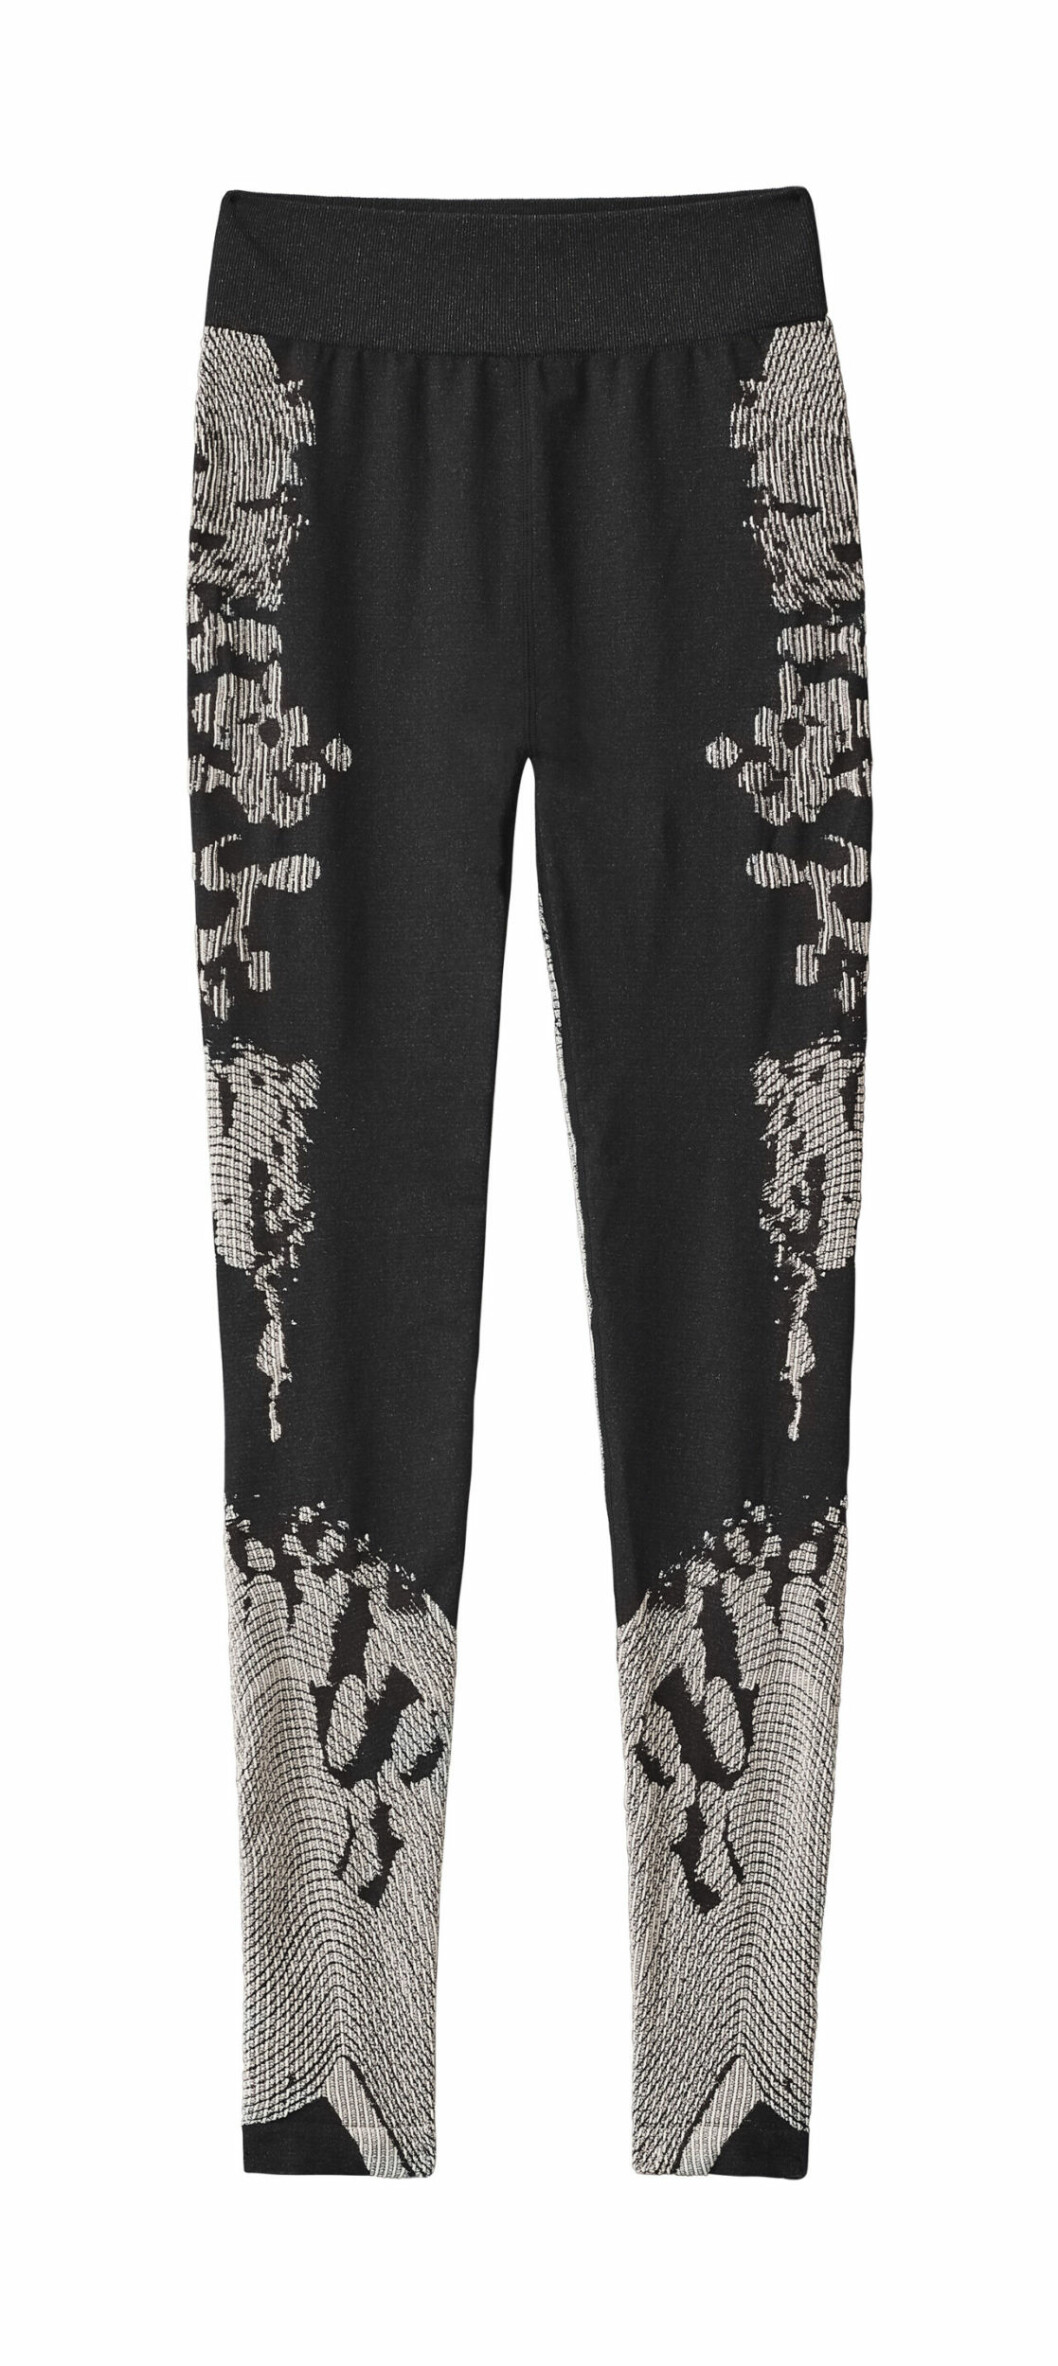 H&M Studio höstkollektion aw 2019 – mönstrade leggings